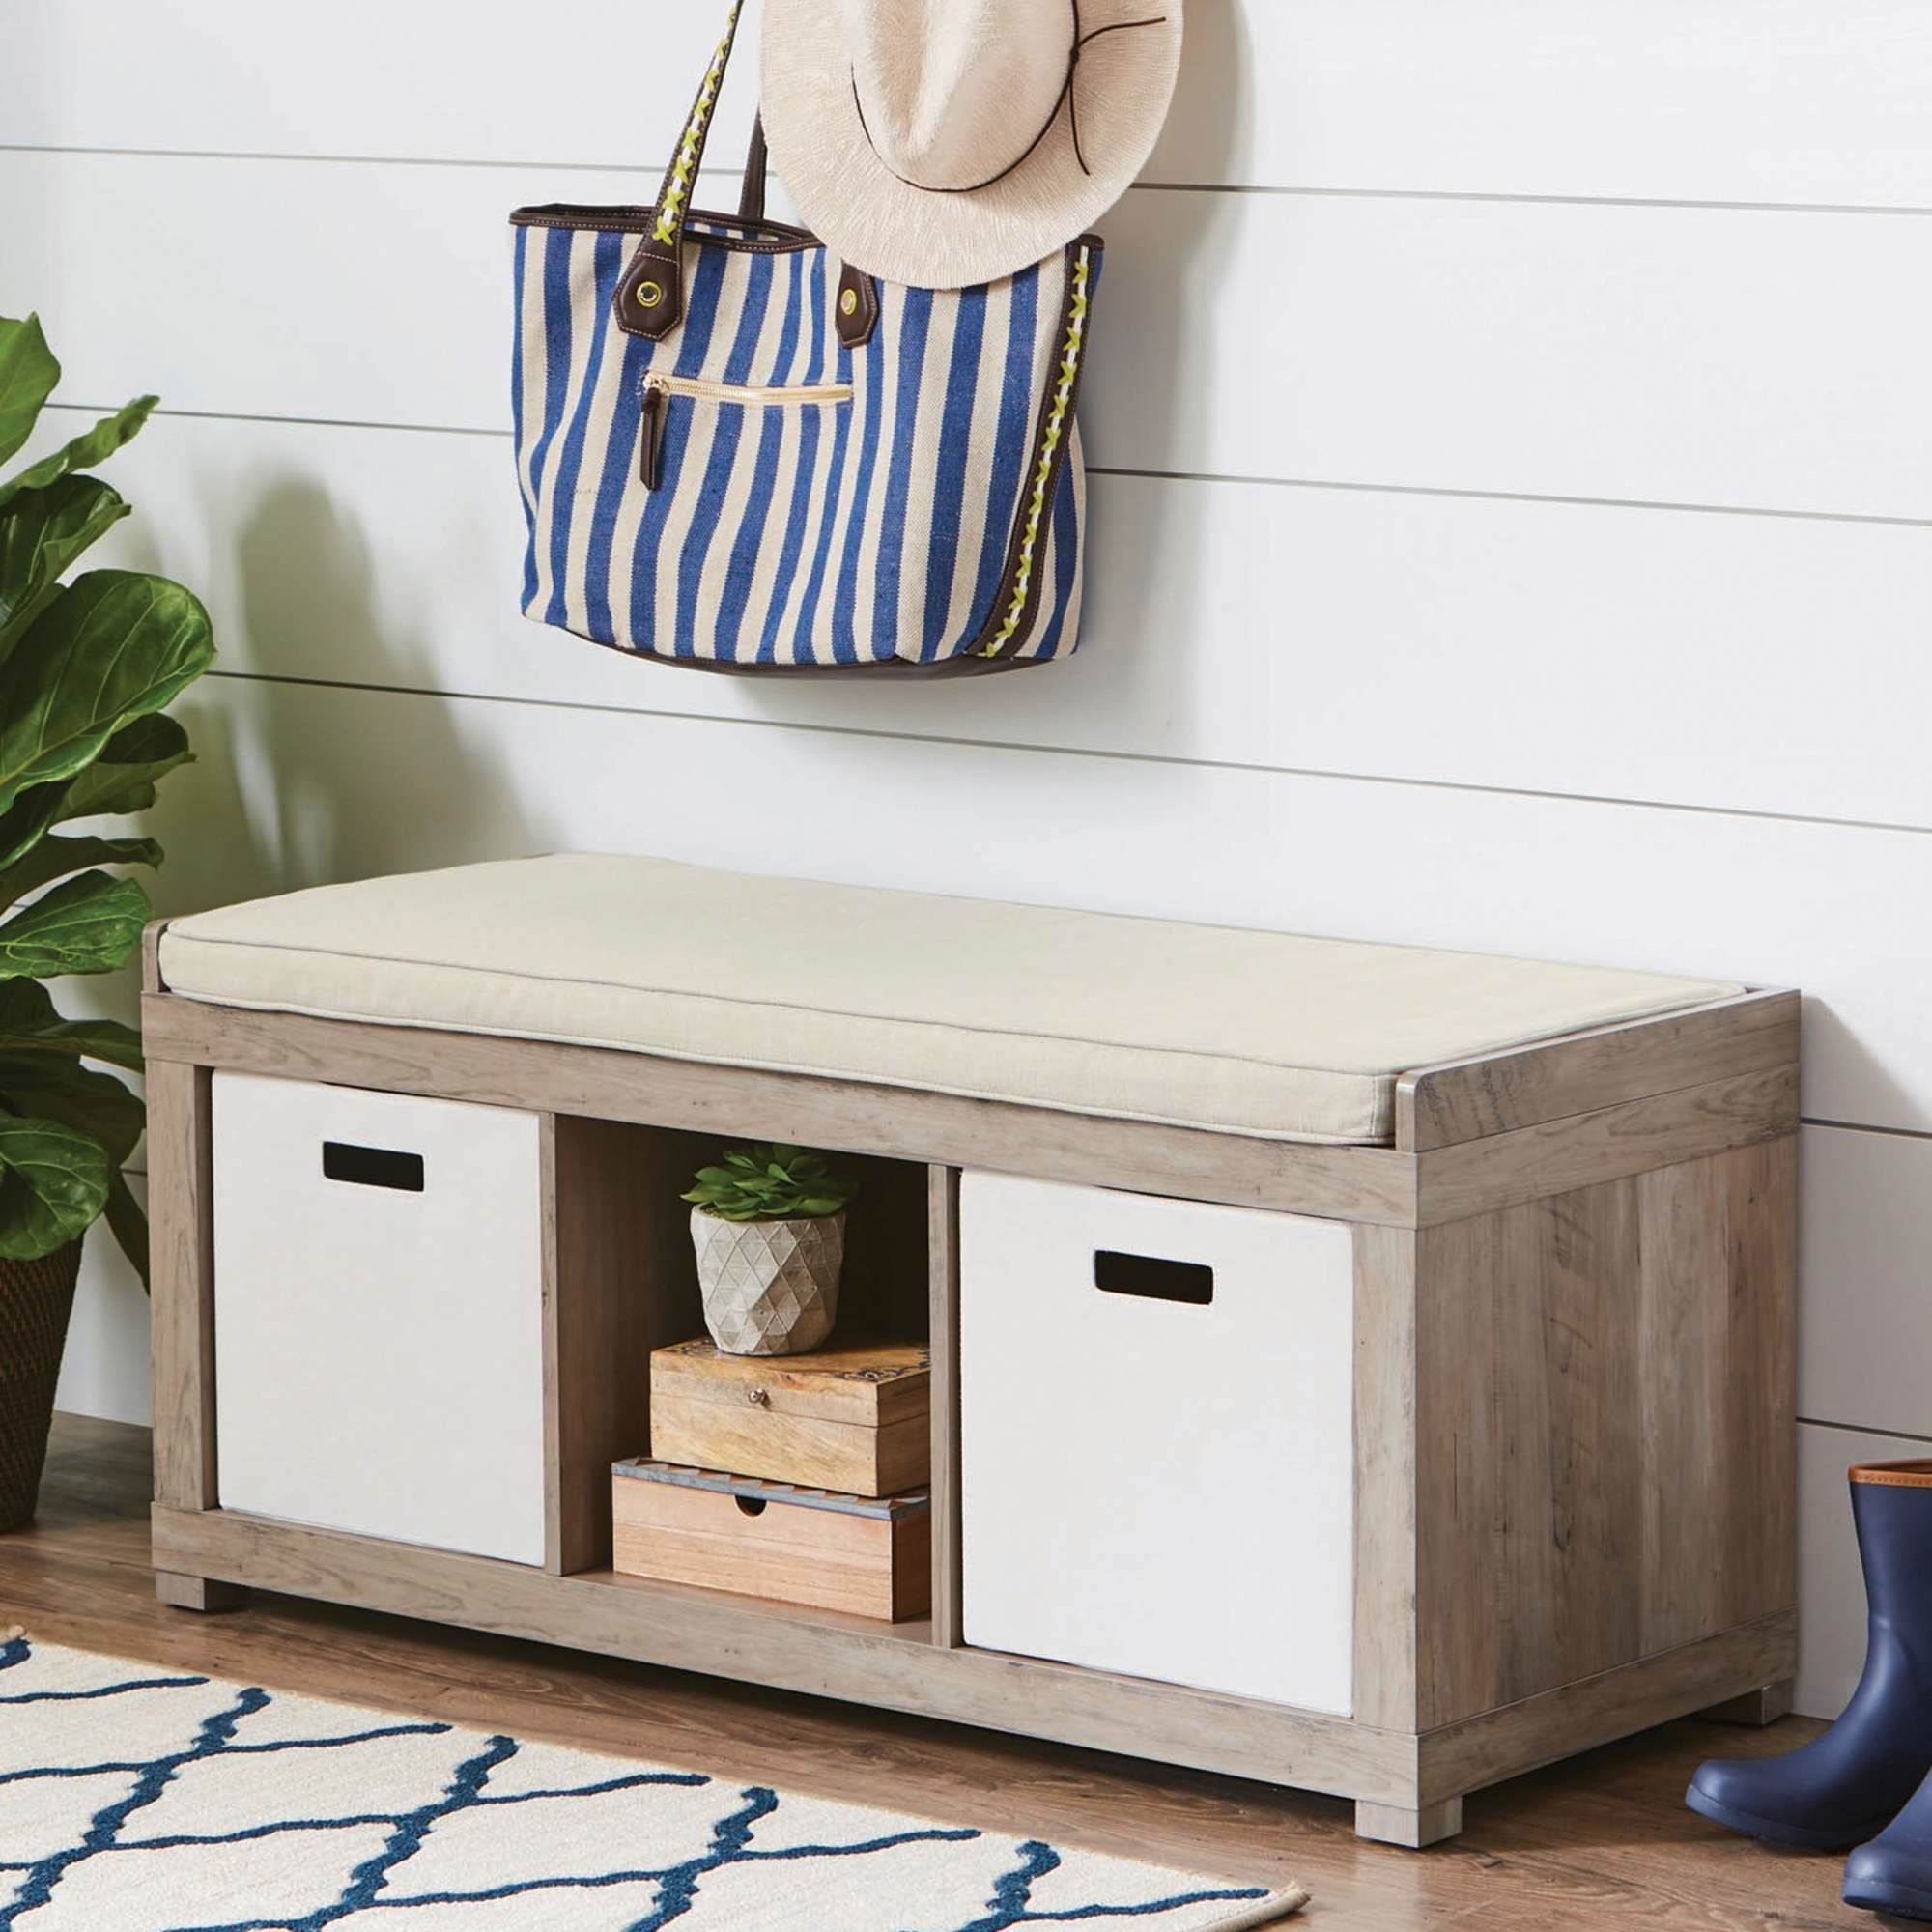 The storage bench organizer in rustic gray